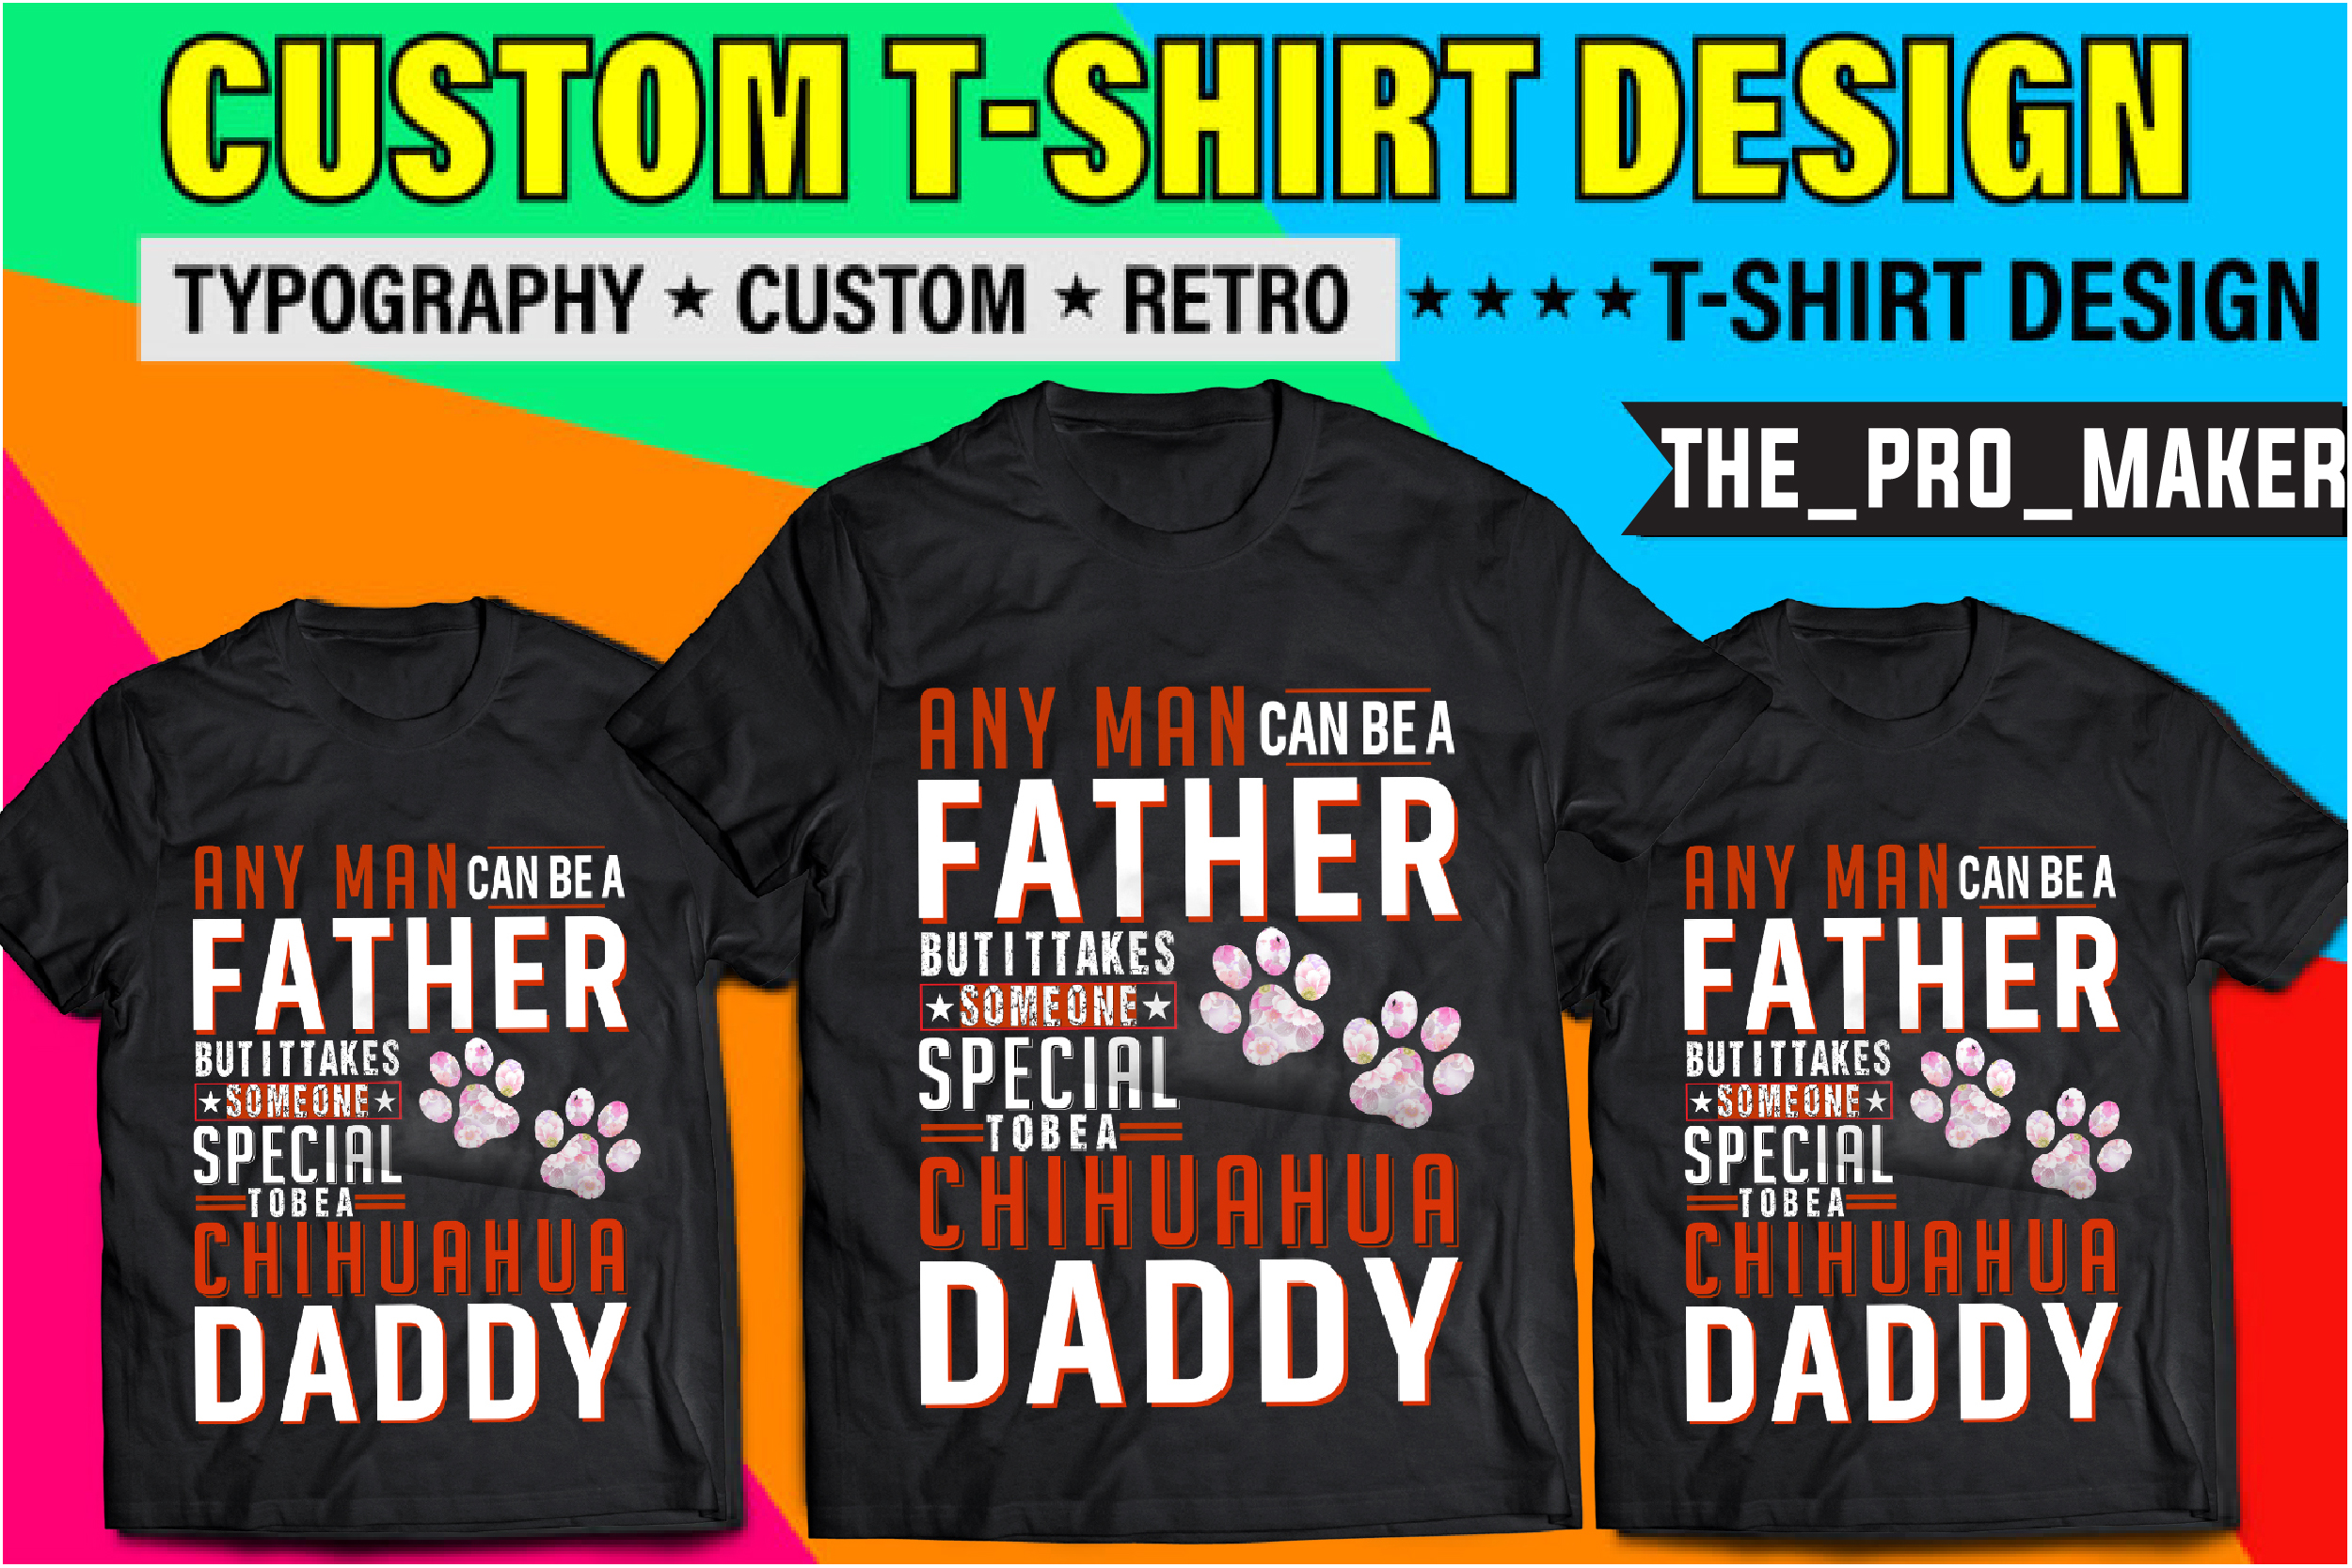 I will do custom t shirt design or bulk t shirt designs within 5h